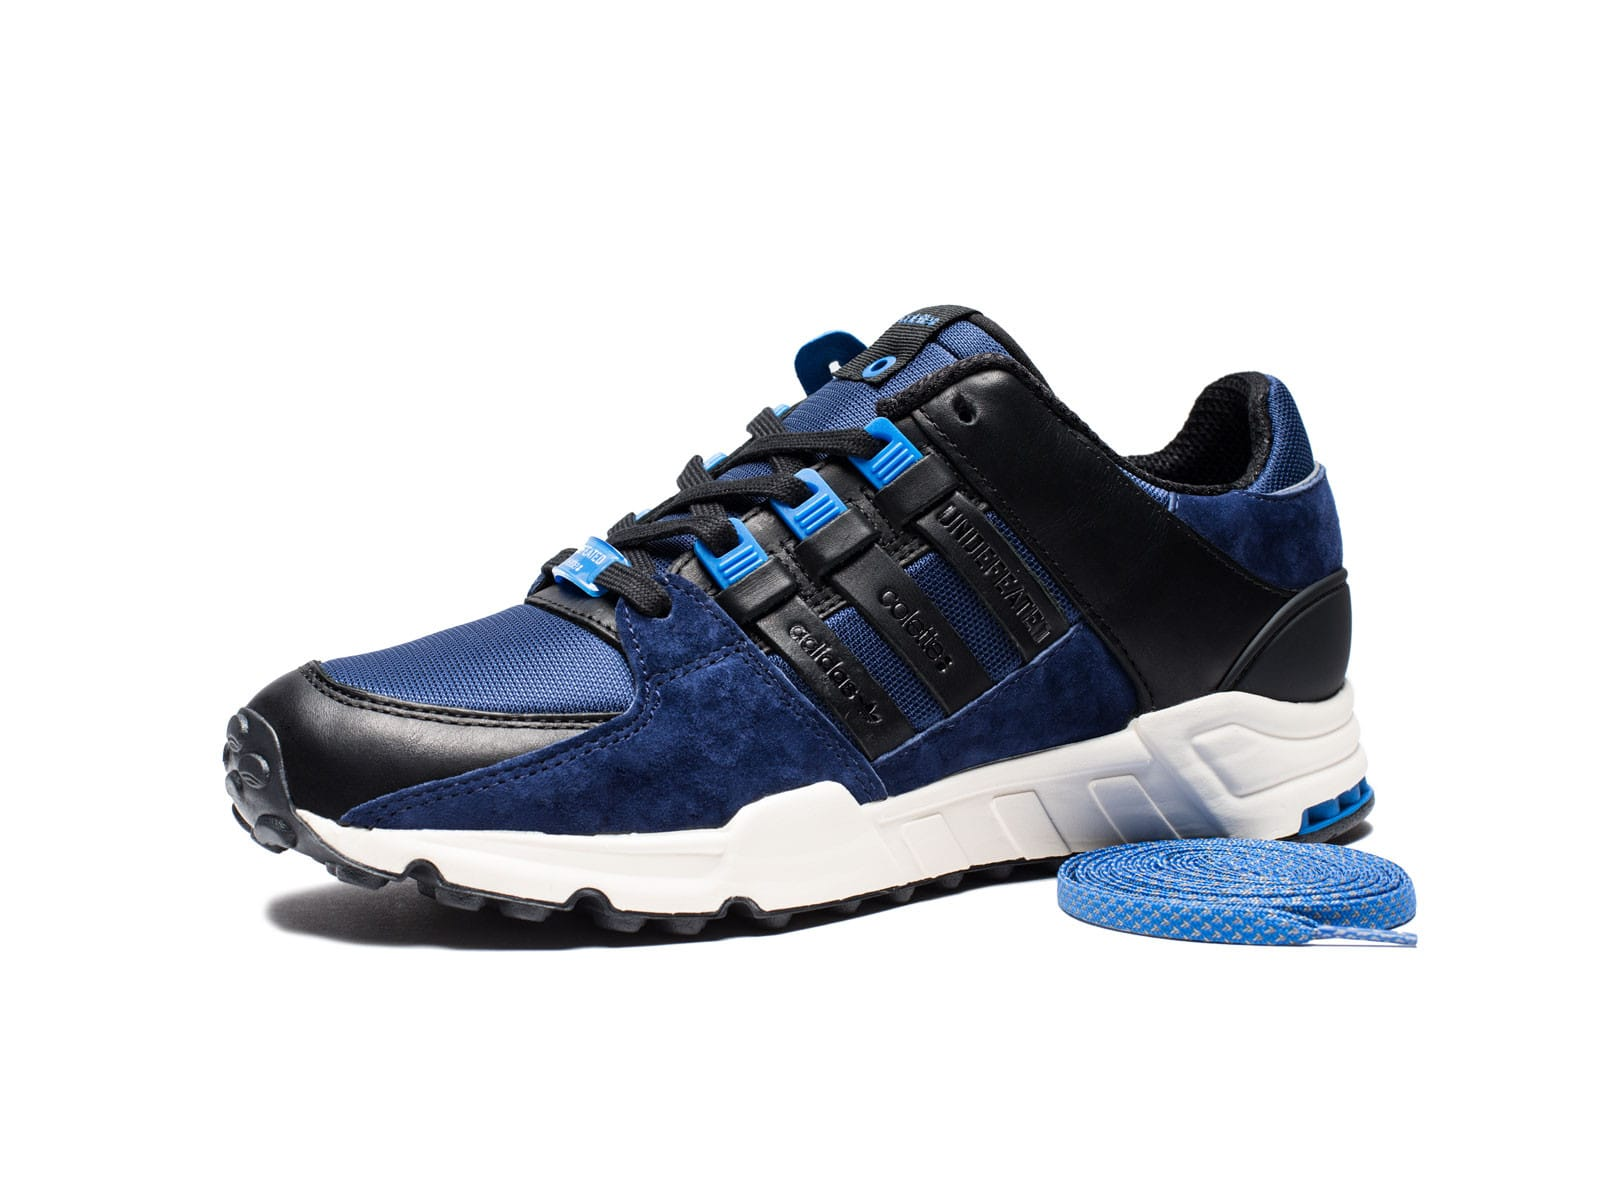 huge selection of 42552 2be9b UNDEFEATED X COLETTE EQT SUPPORT - DARKBLUE BLACK ROYAL